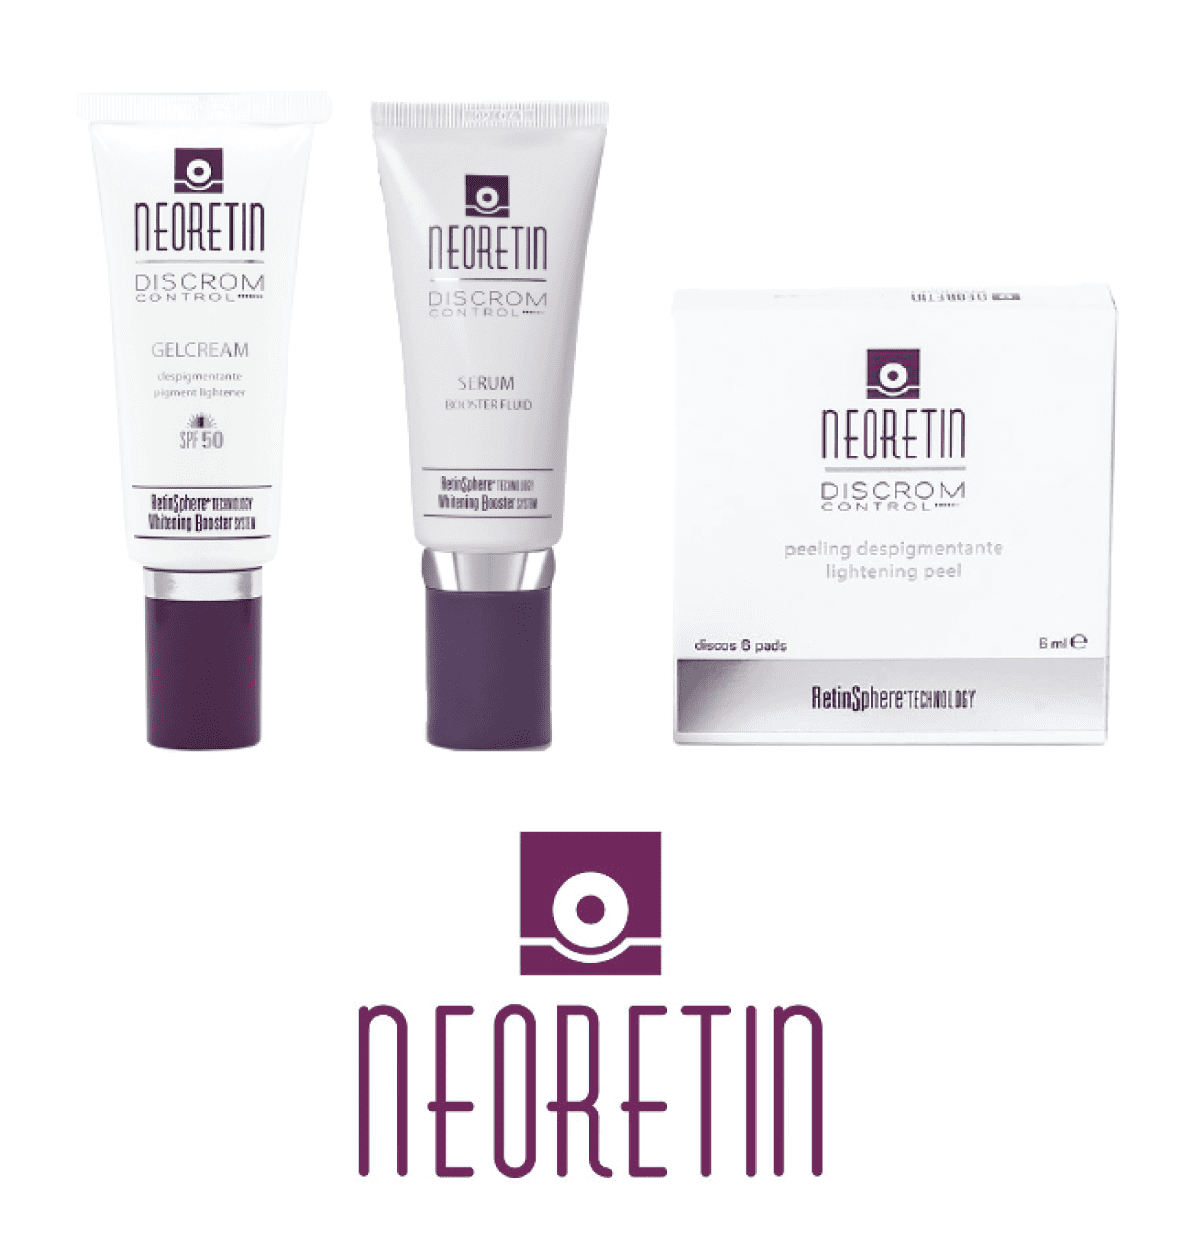 Neoretin - Acne Scarring Treatment Product